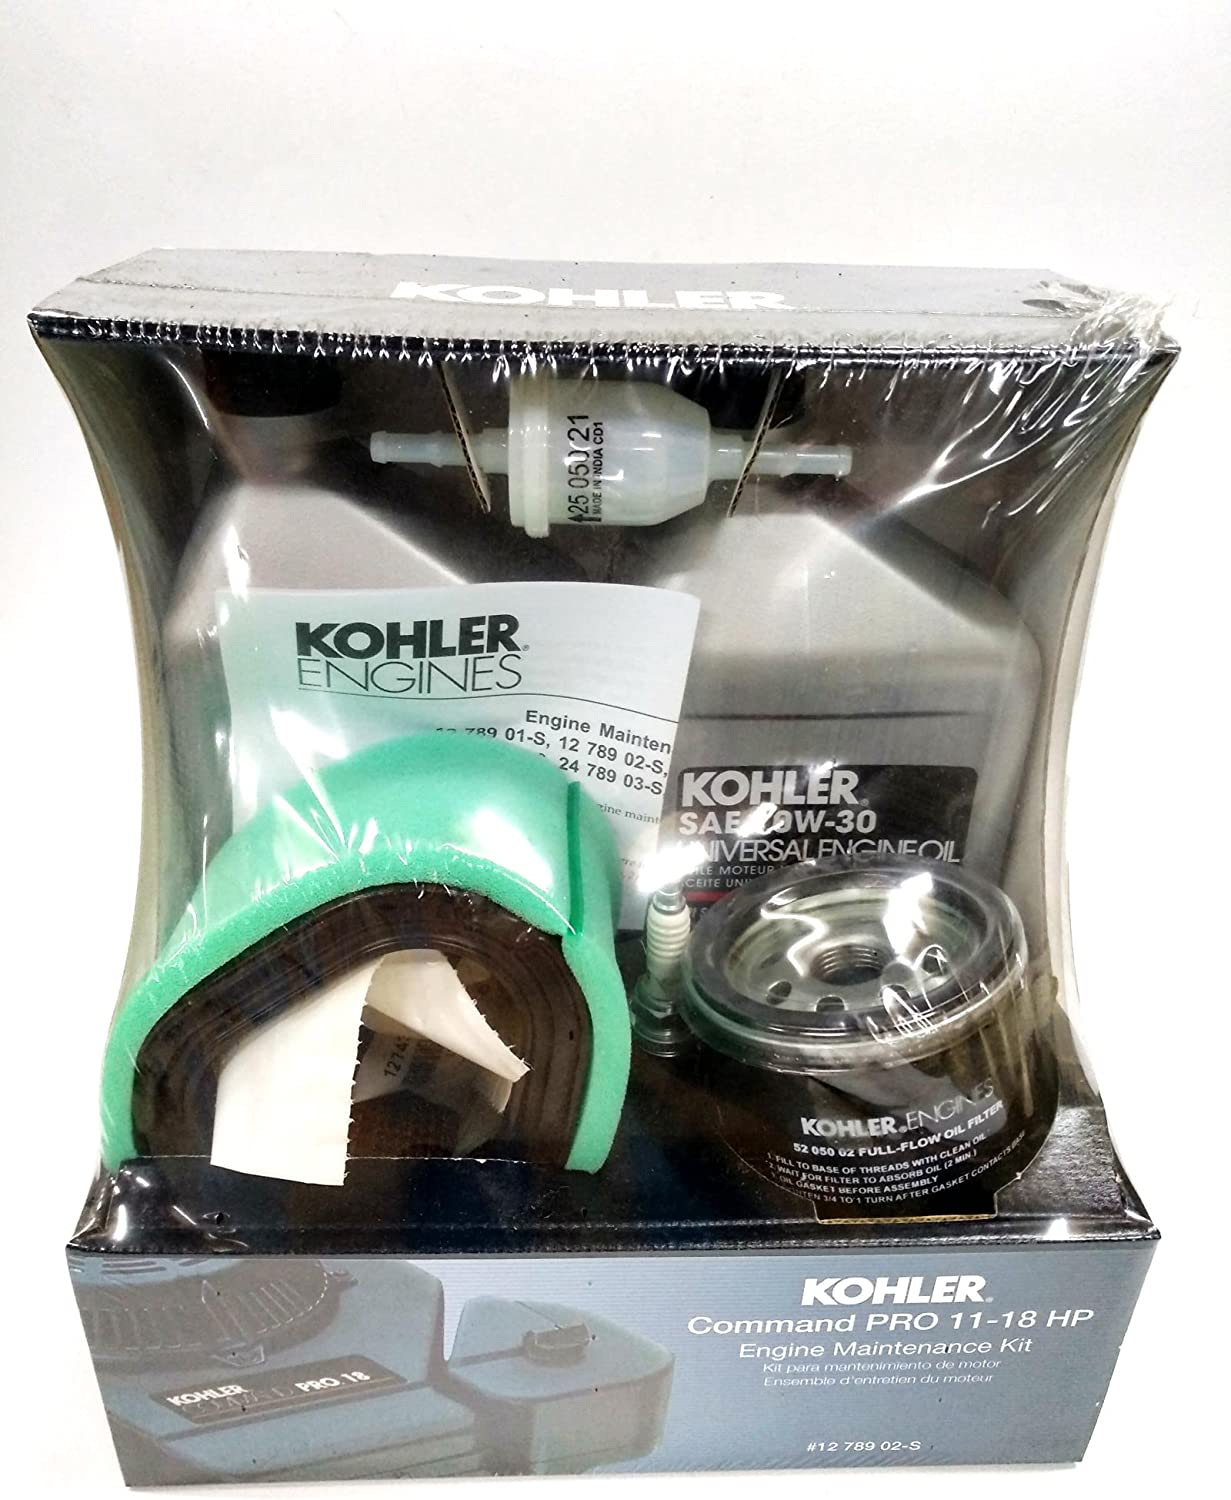 Kohler 1278902S Engine Maintenance Kit Command Single Cylinder PRO CV11-18, CV460 - CV490